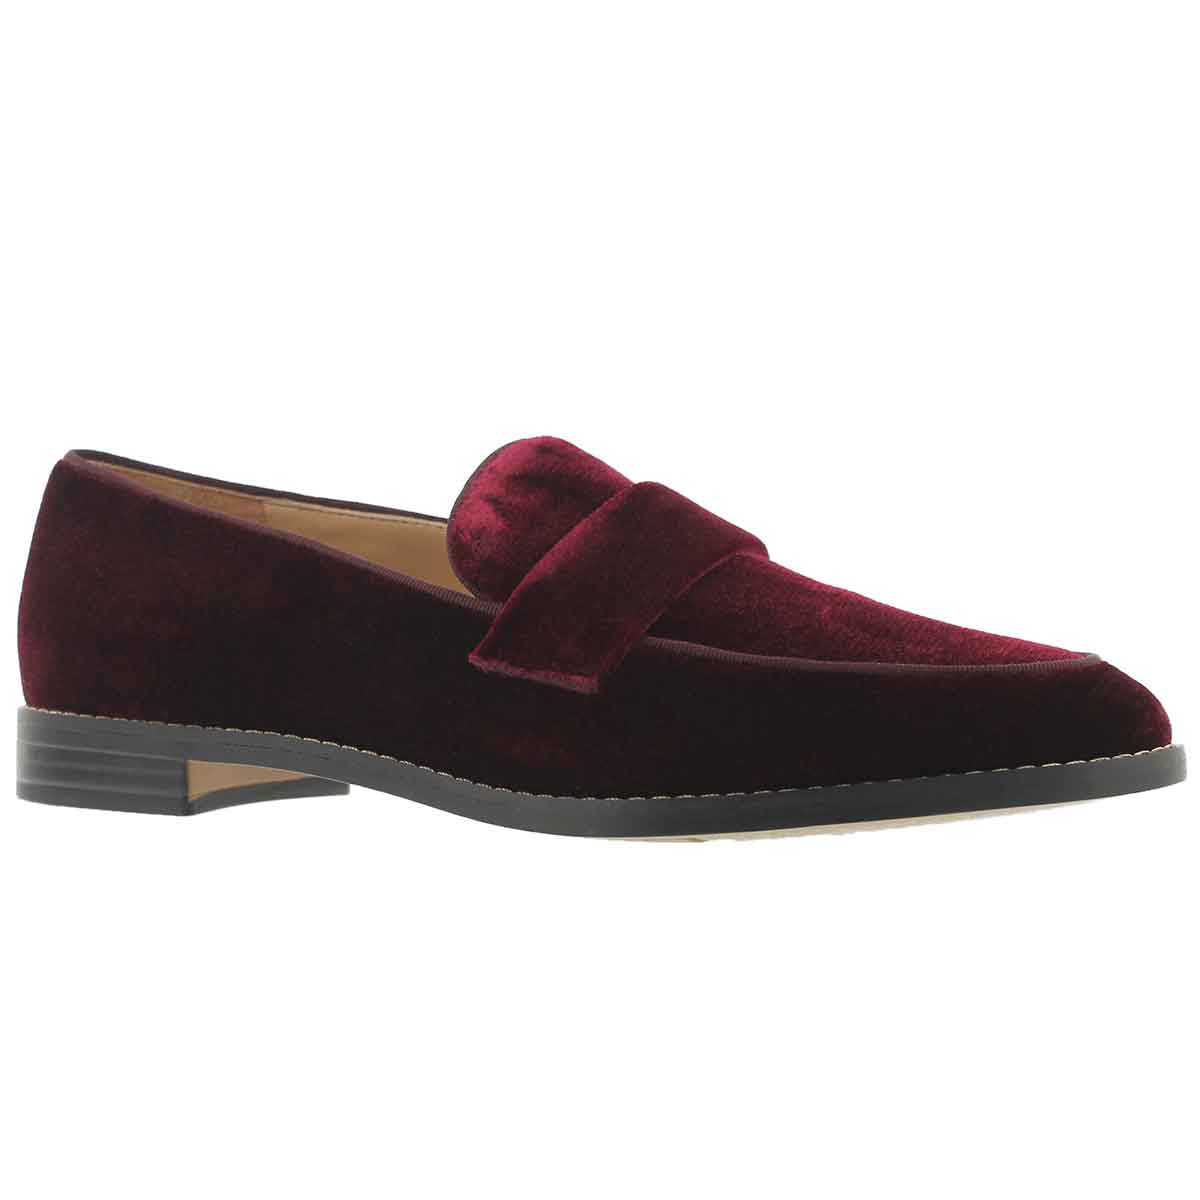 Women's HUDLEY burgundy casual slip on shoes